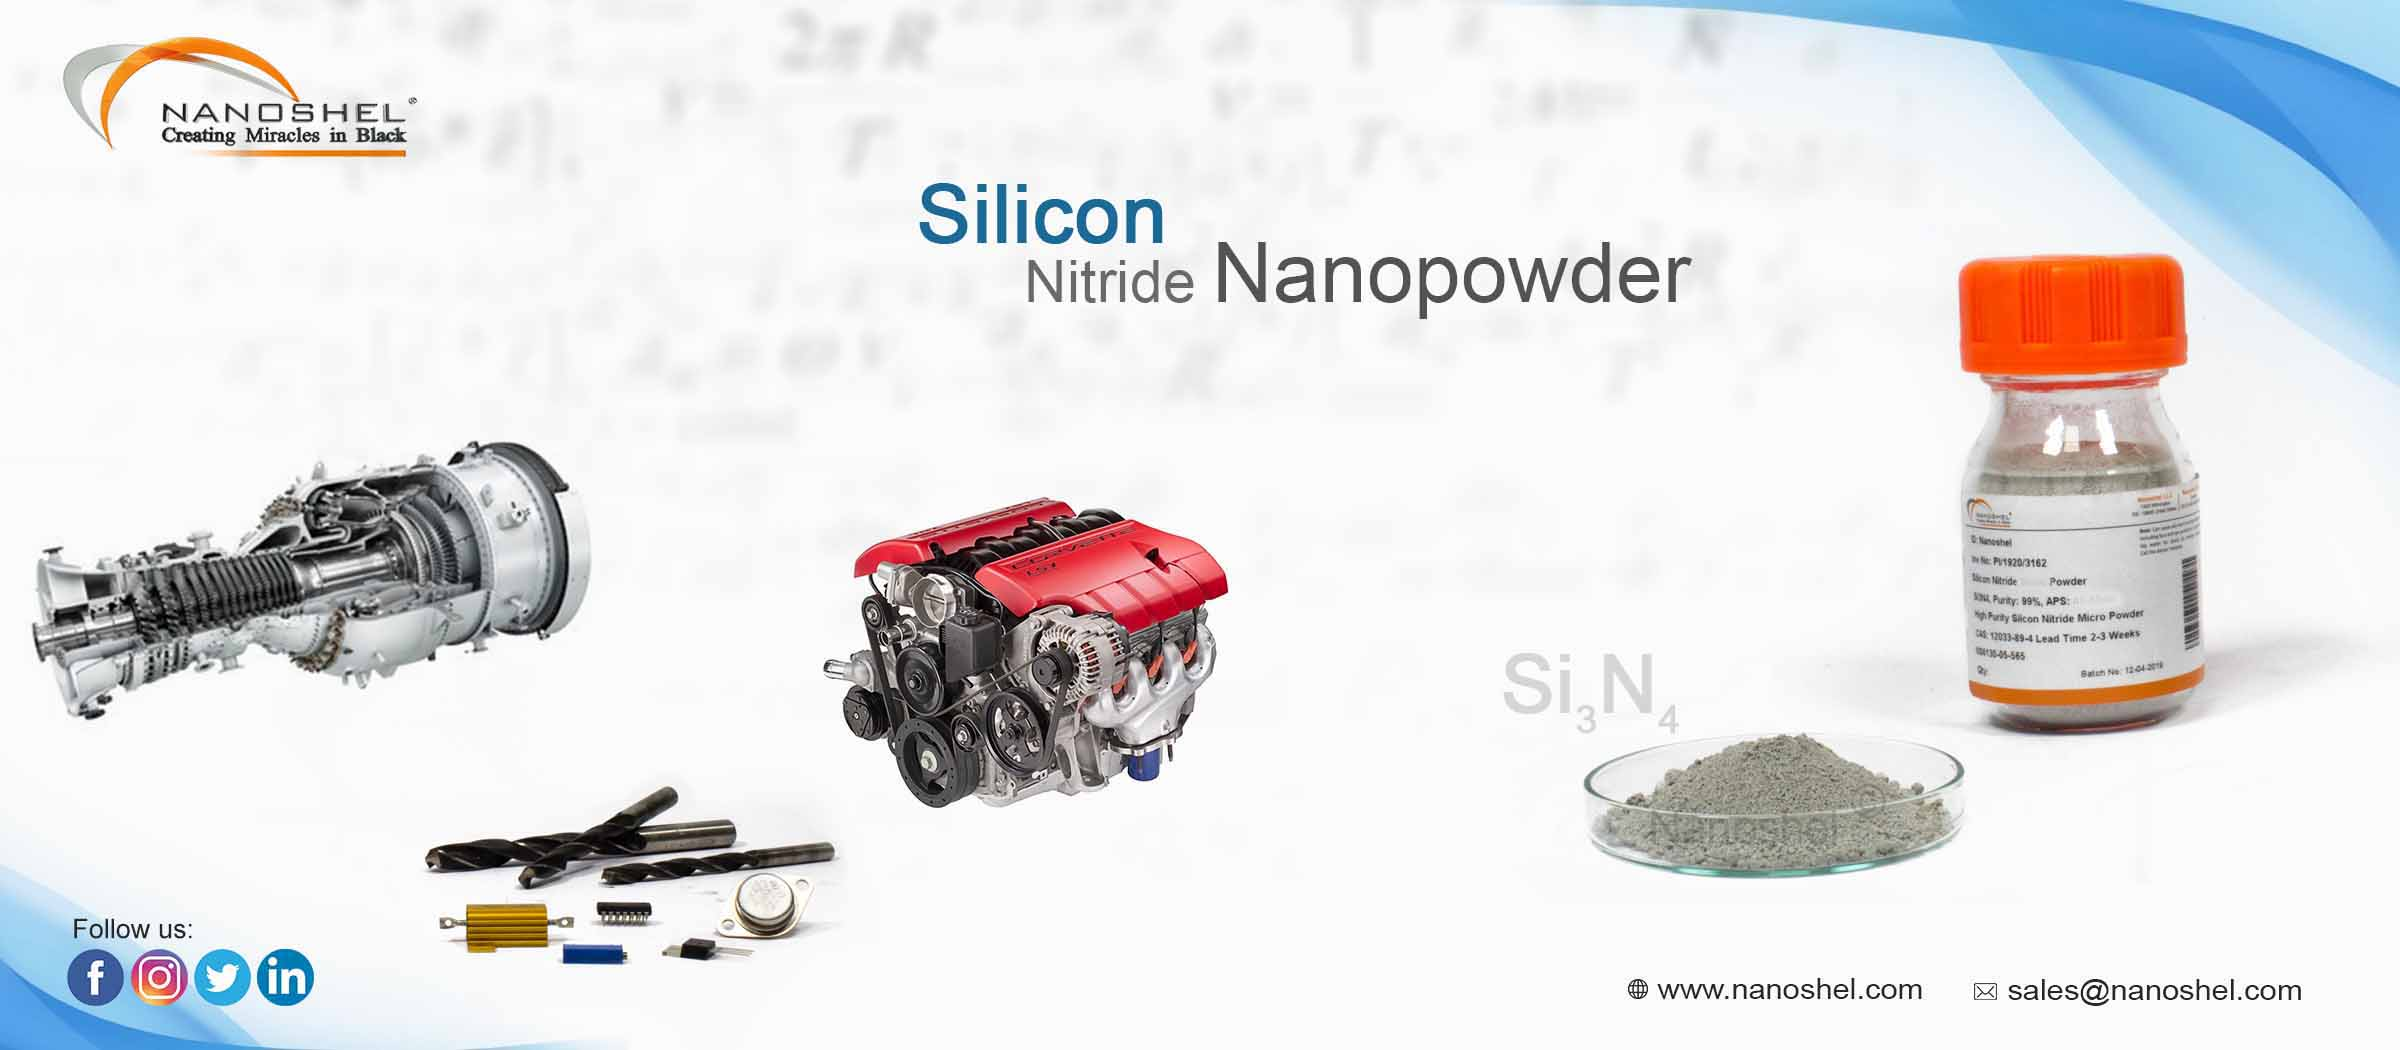 Silicon Nitride Nanoparticles